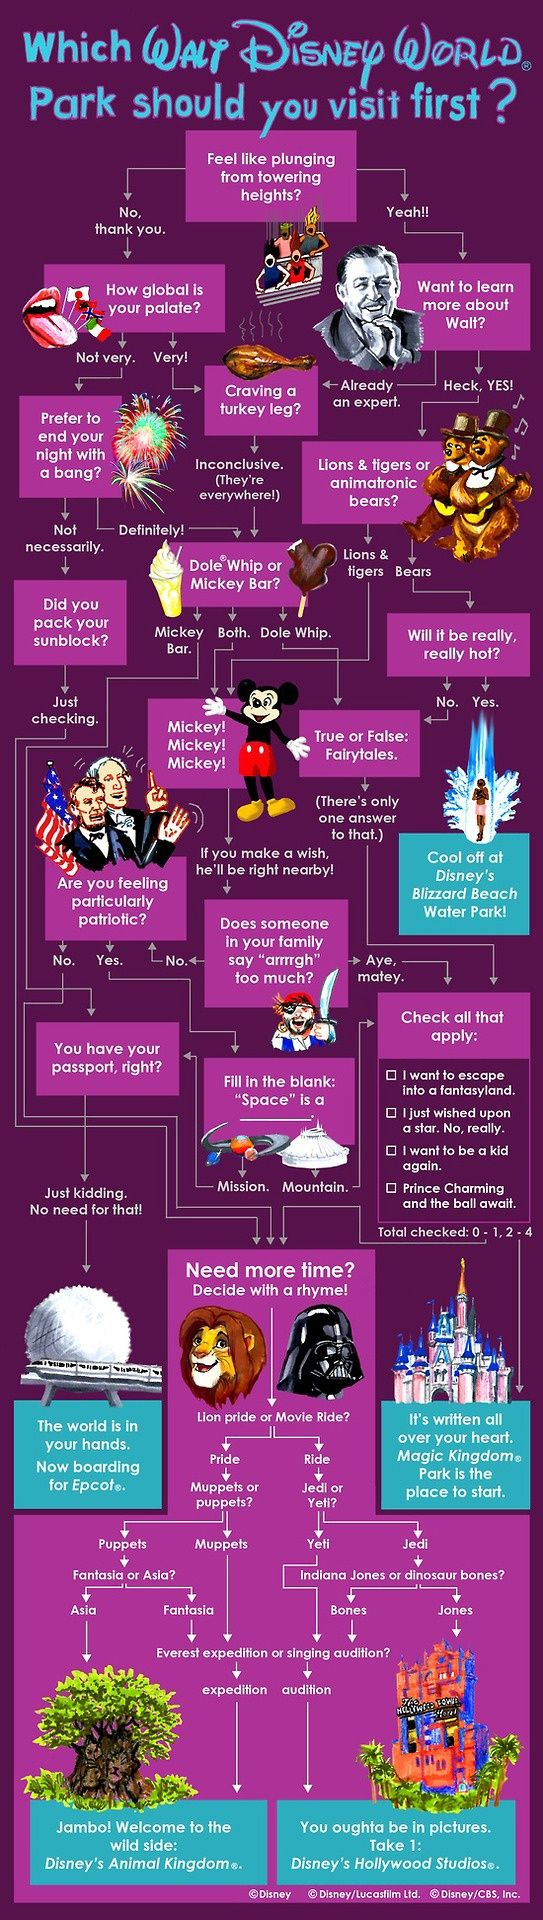 Which Walt Disney World Park should you visit first? I should apparently go to Magic Kingdom Park! Yay!